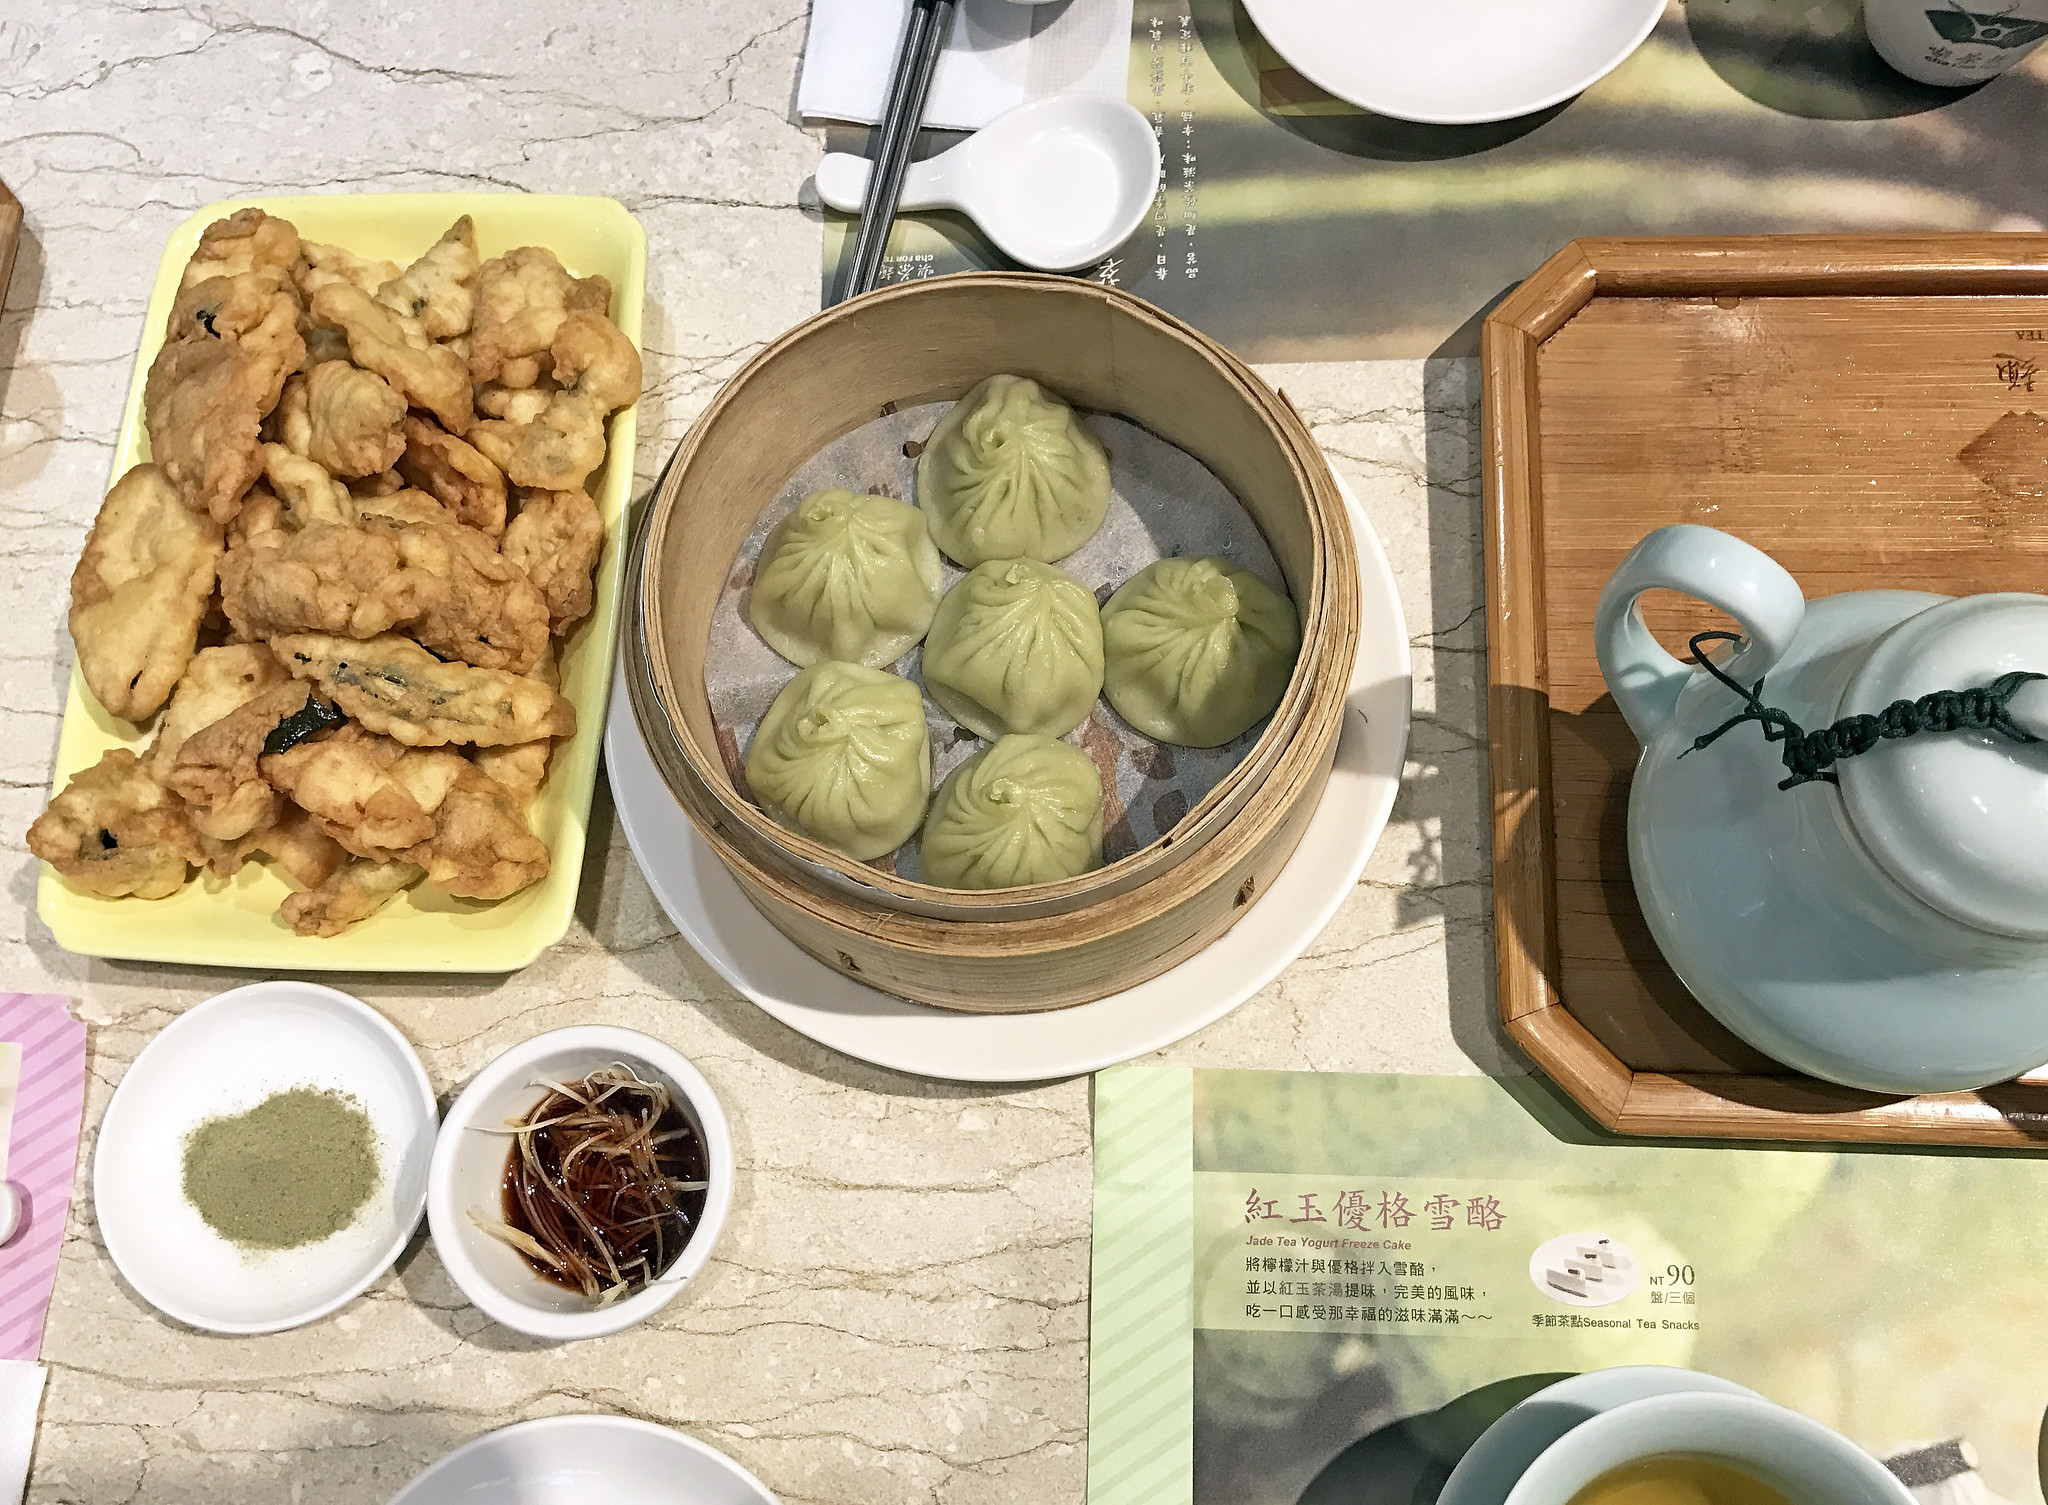 Tempura fried tea leaves with matcha and fish dumplings